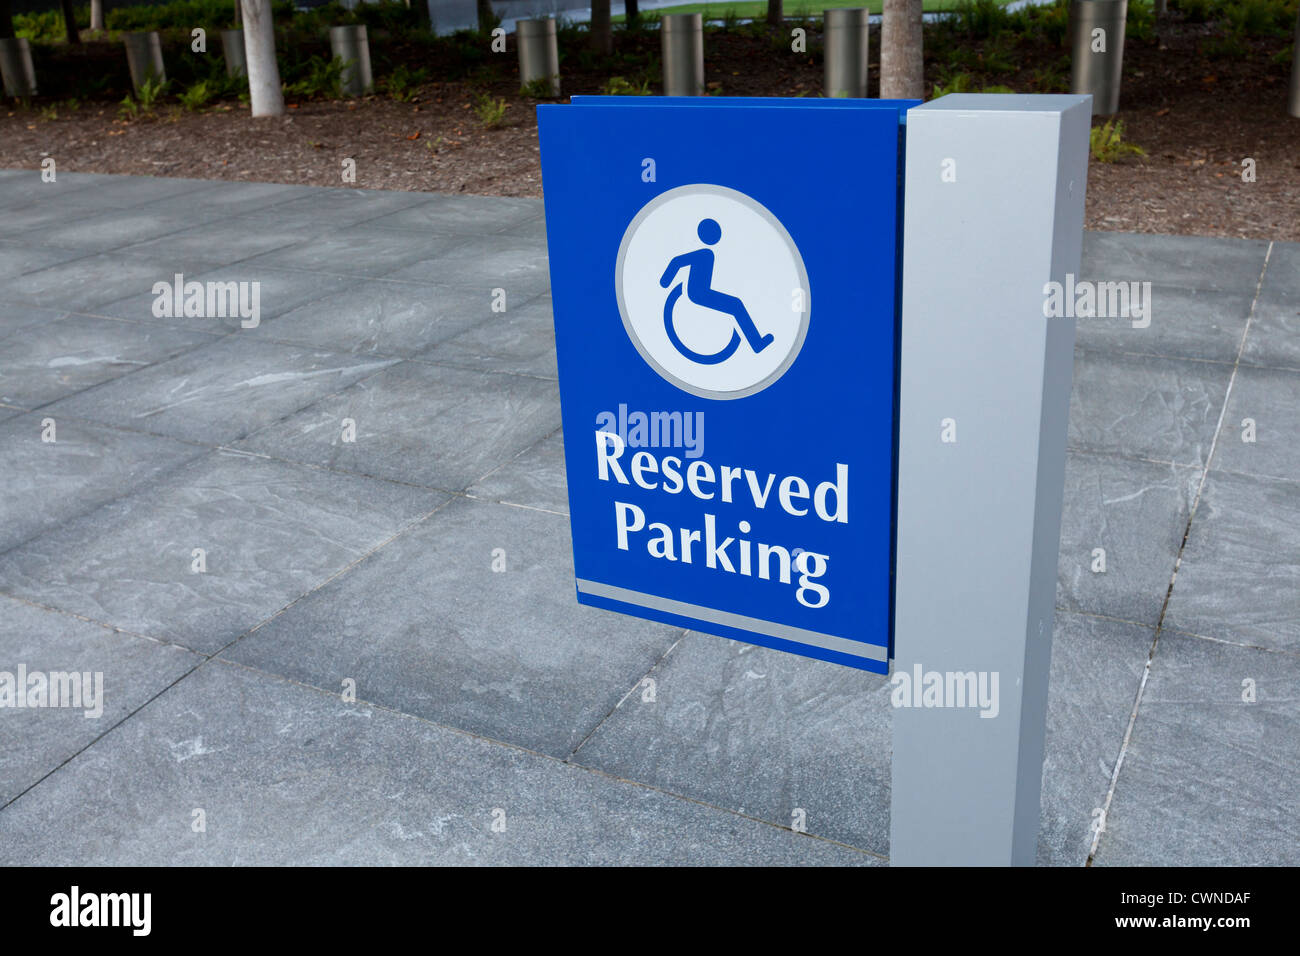 Disabled reserved parking sign - Stock Image